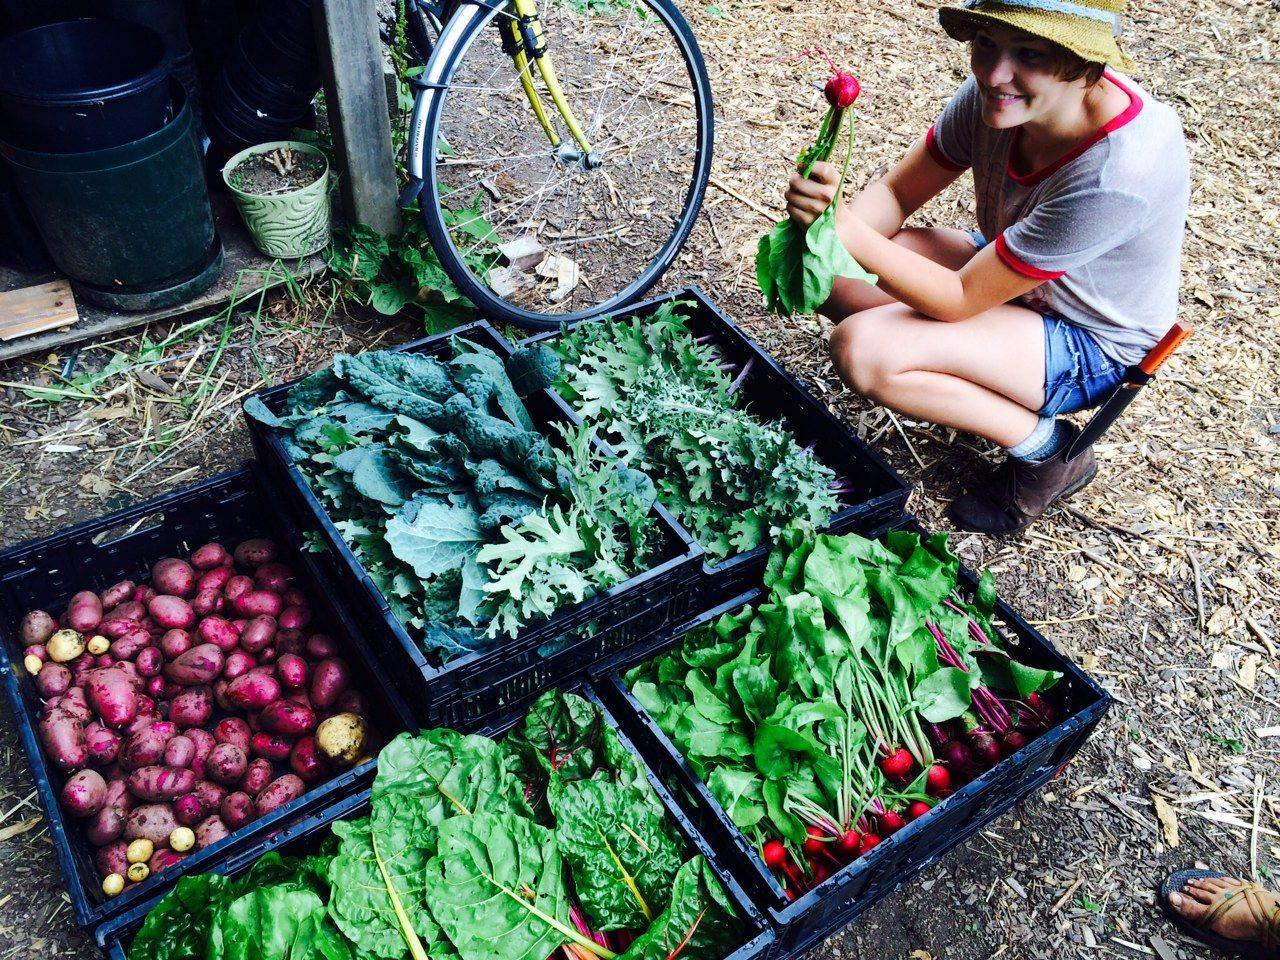 A student posing with their harvest of veggies and greens